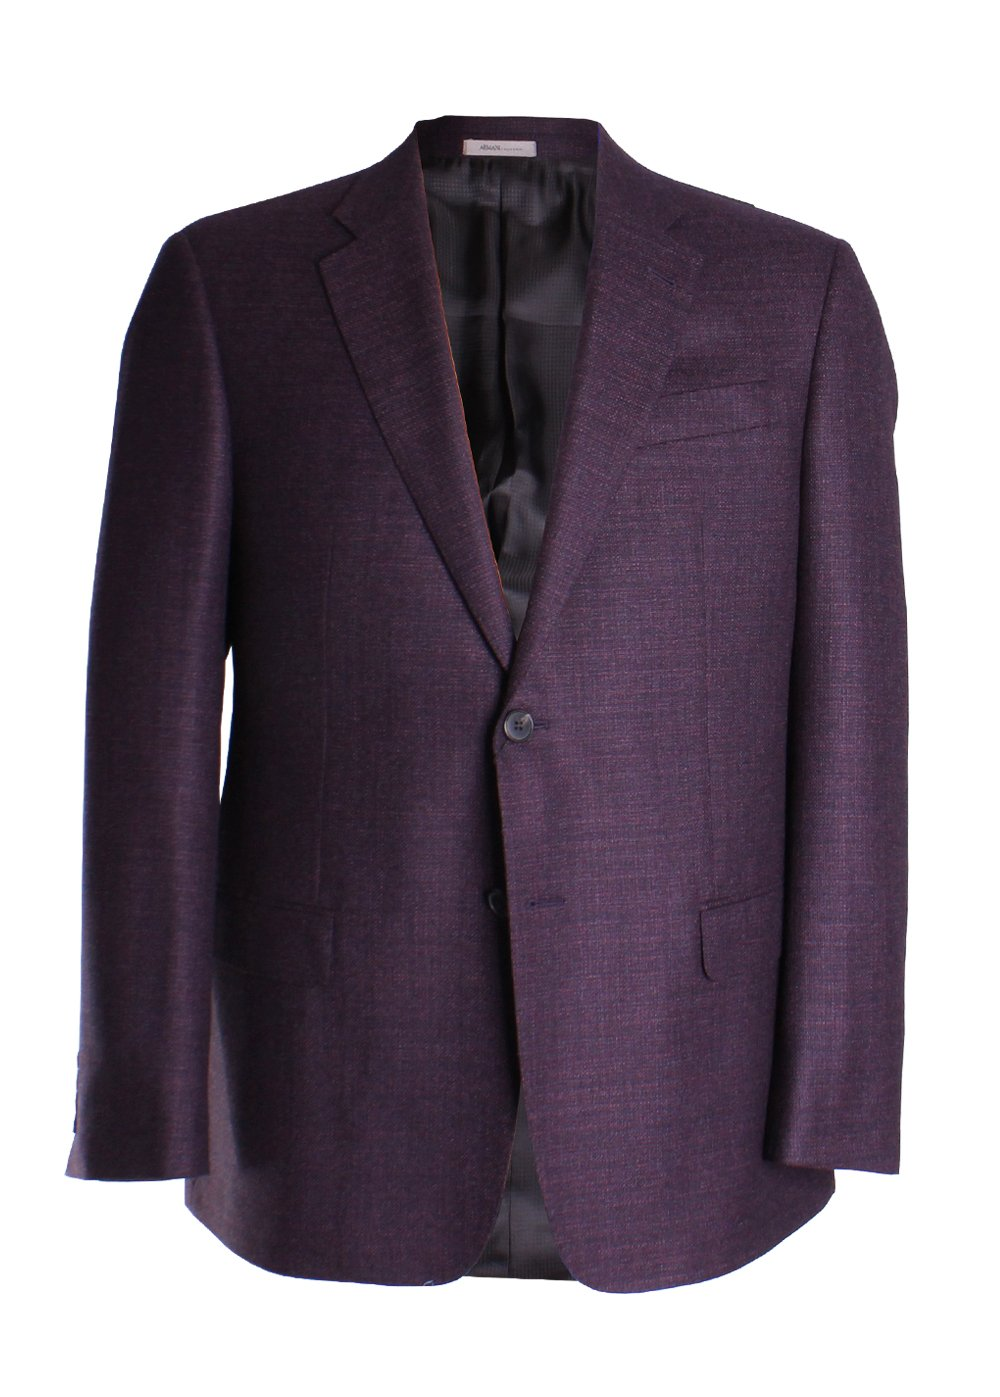 Armani Sportcoat ZC641 48L Solid Dark Red